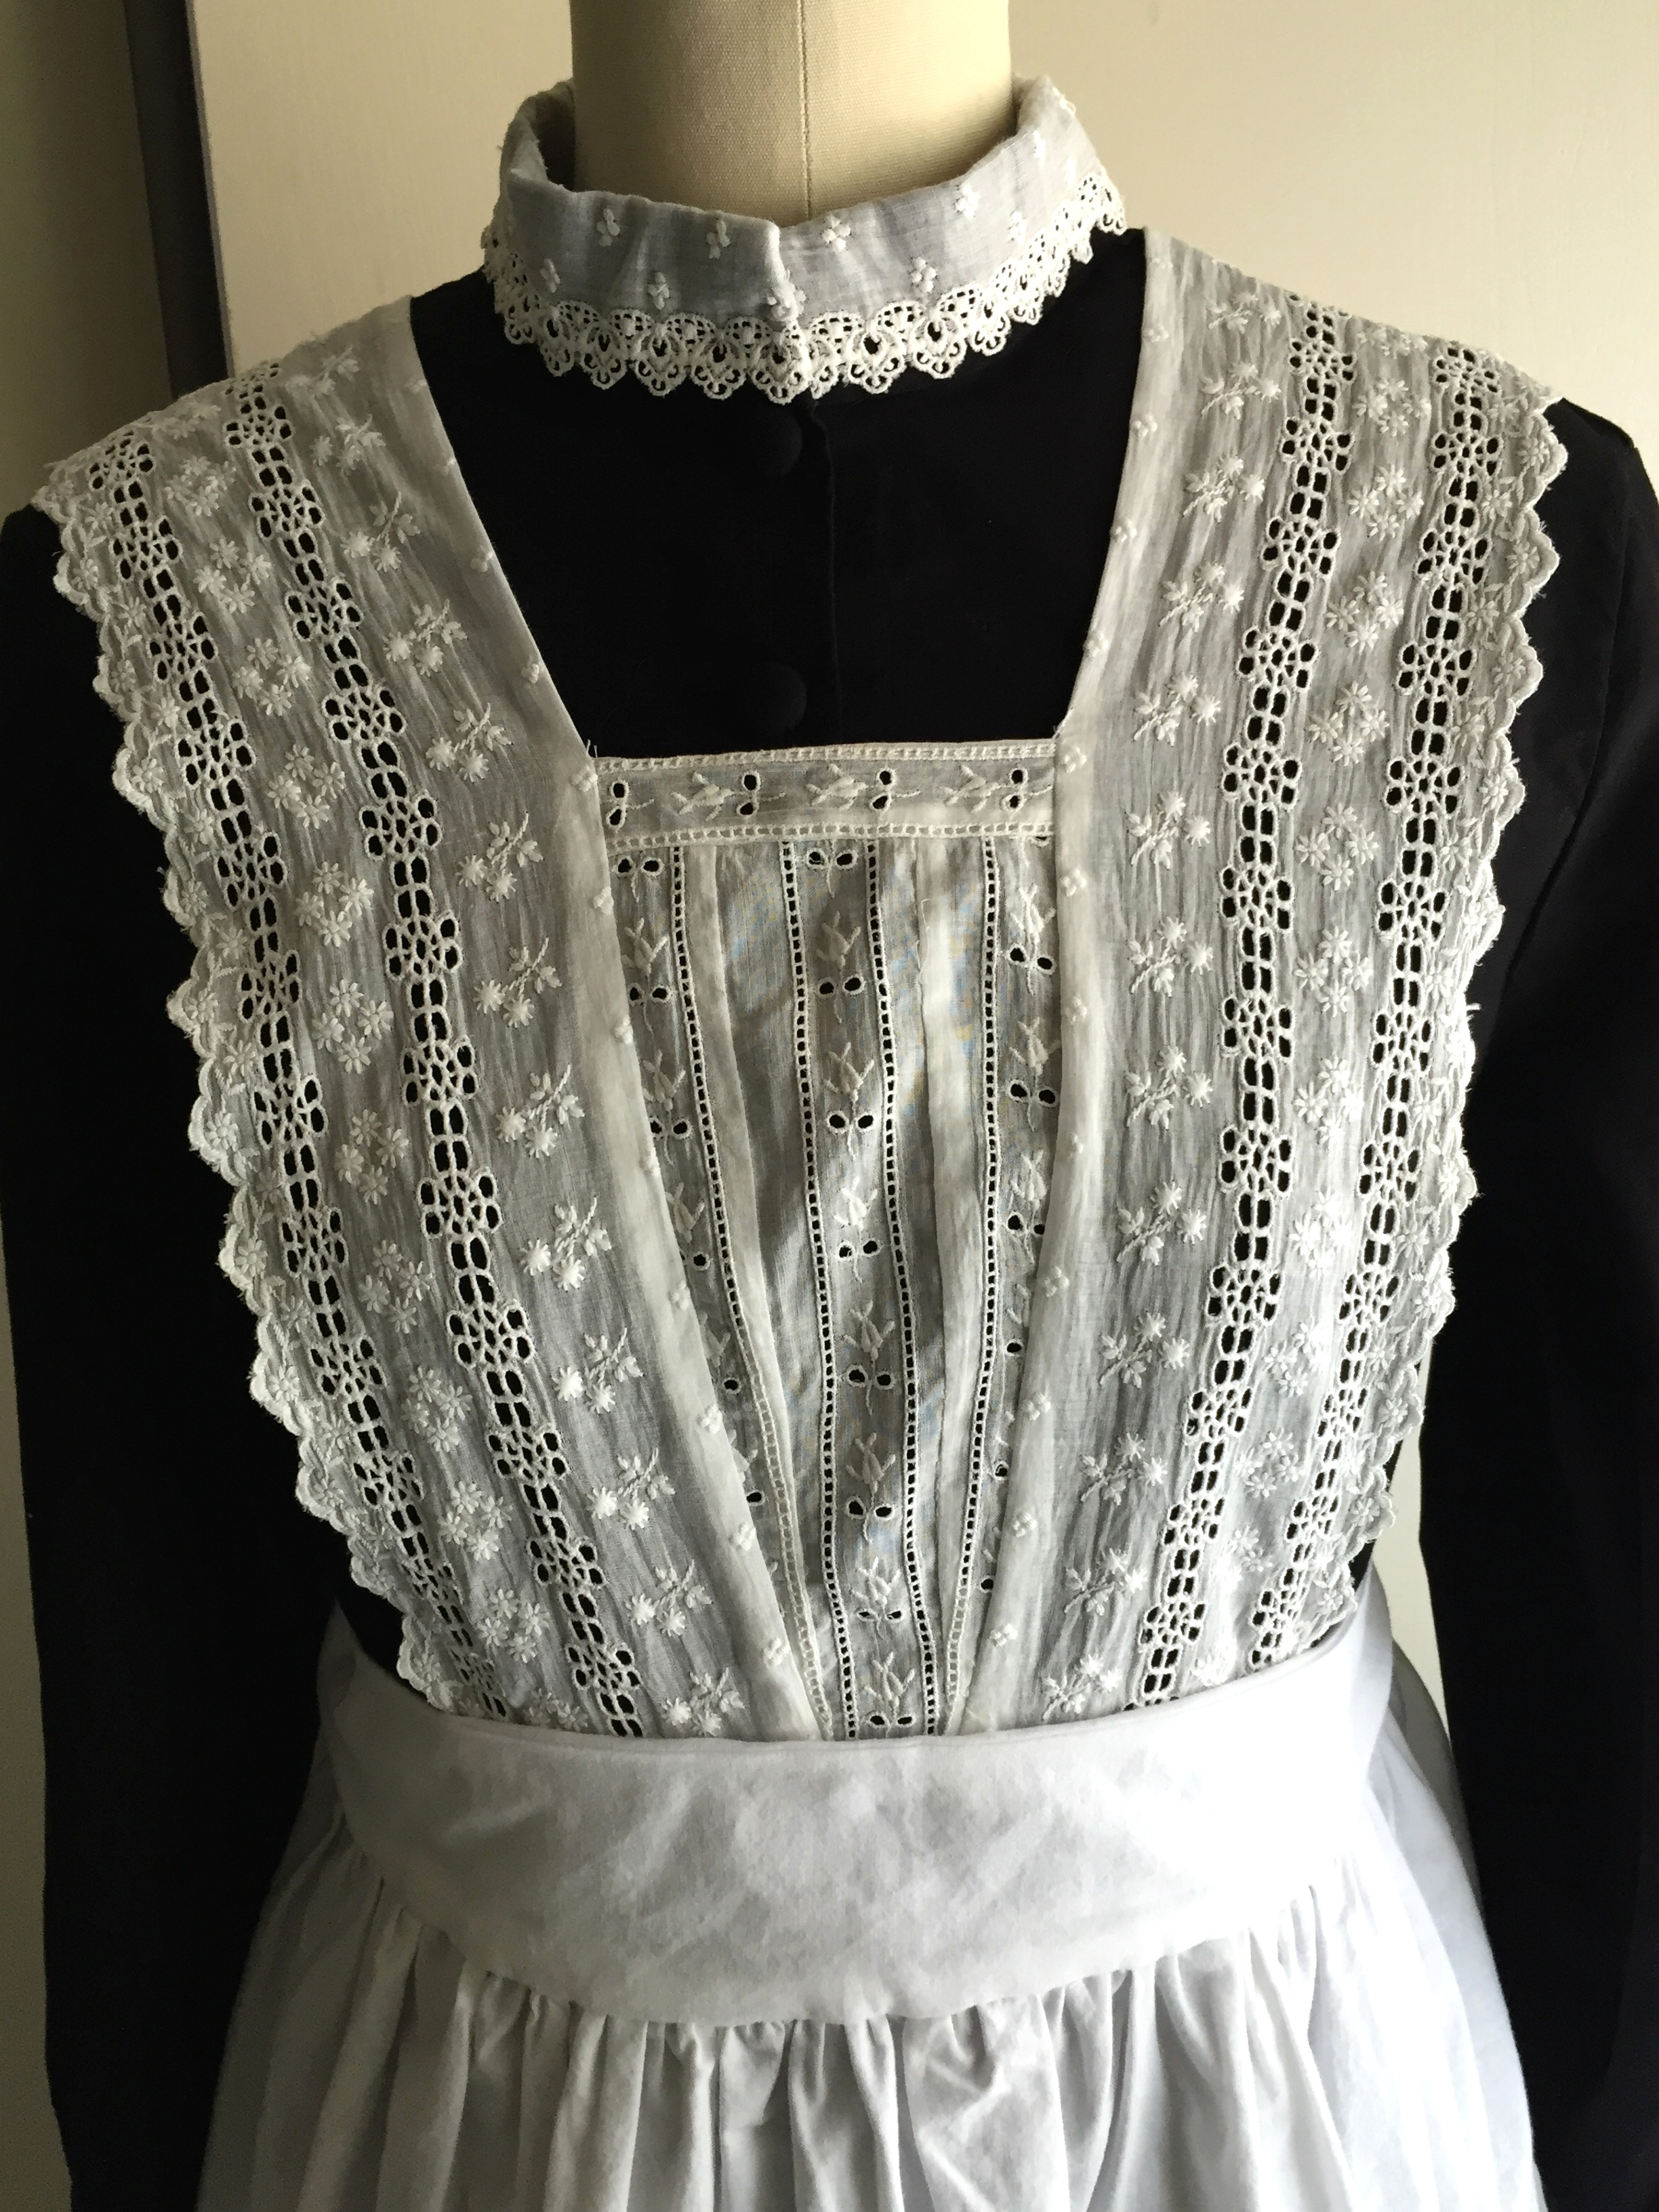 Edwardian white apron